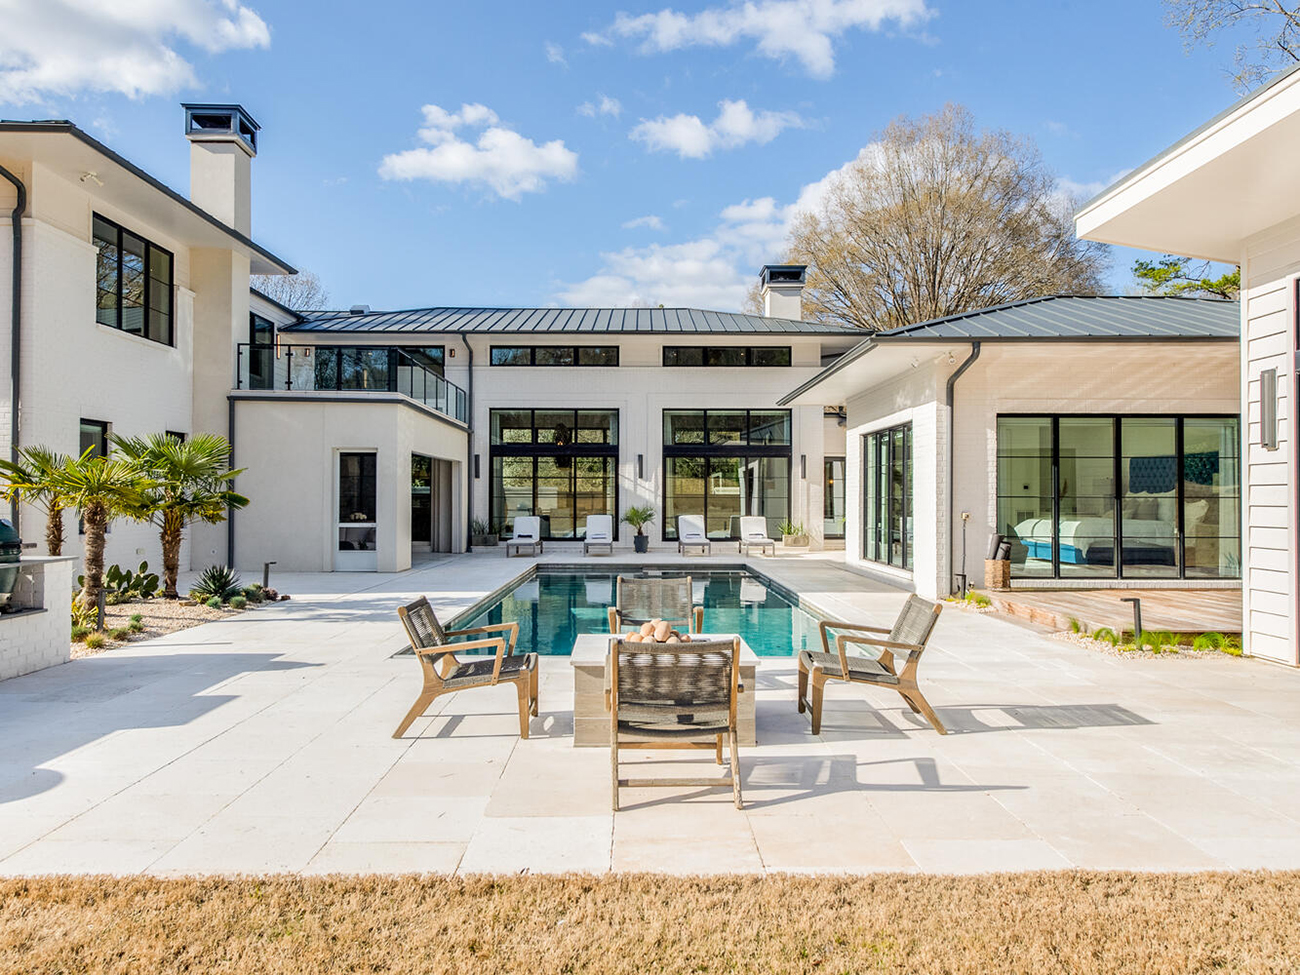 Natalie and Jonathan Stewart's south Charlotte home with indoor putt-putt asks $5.2M